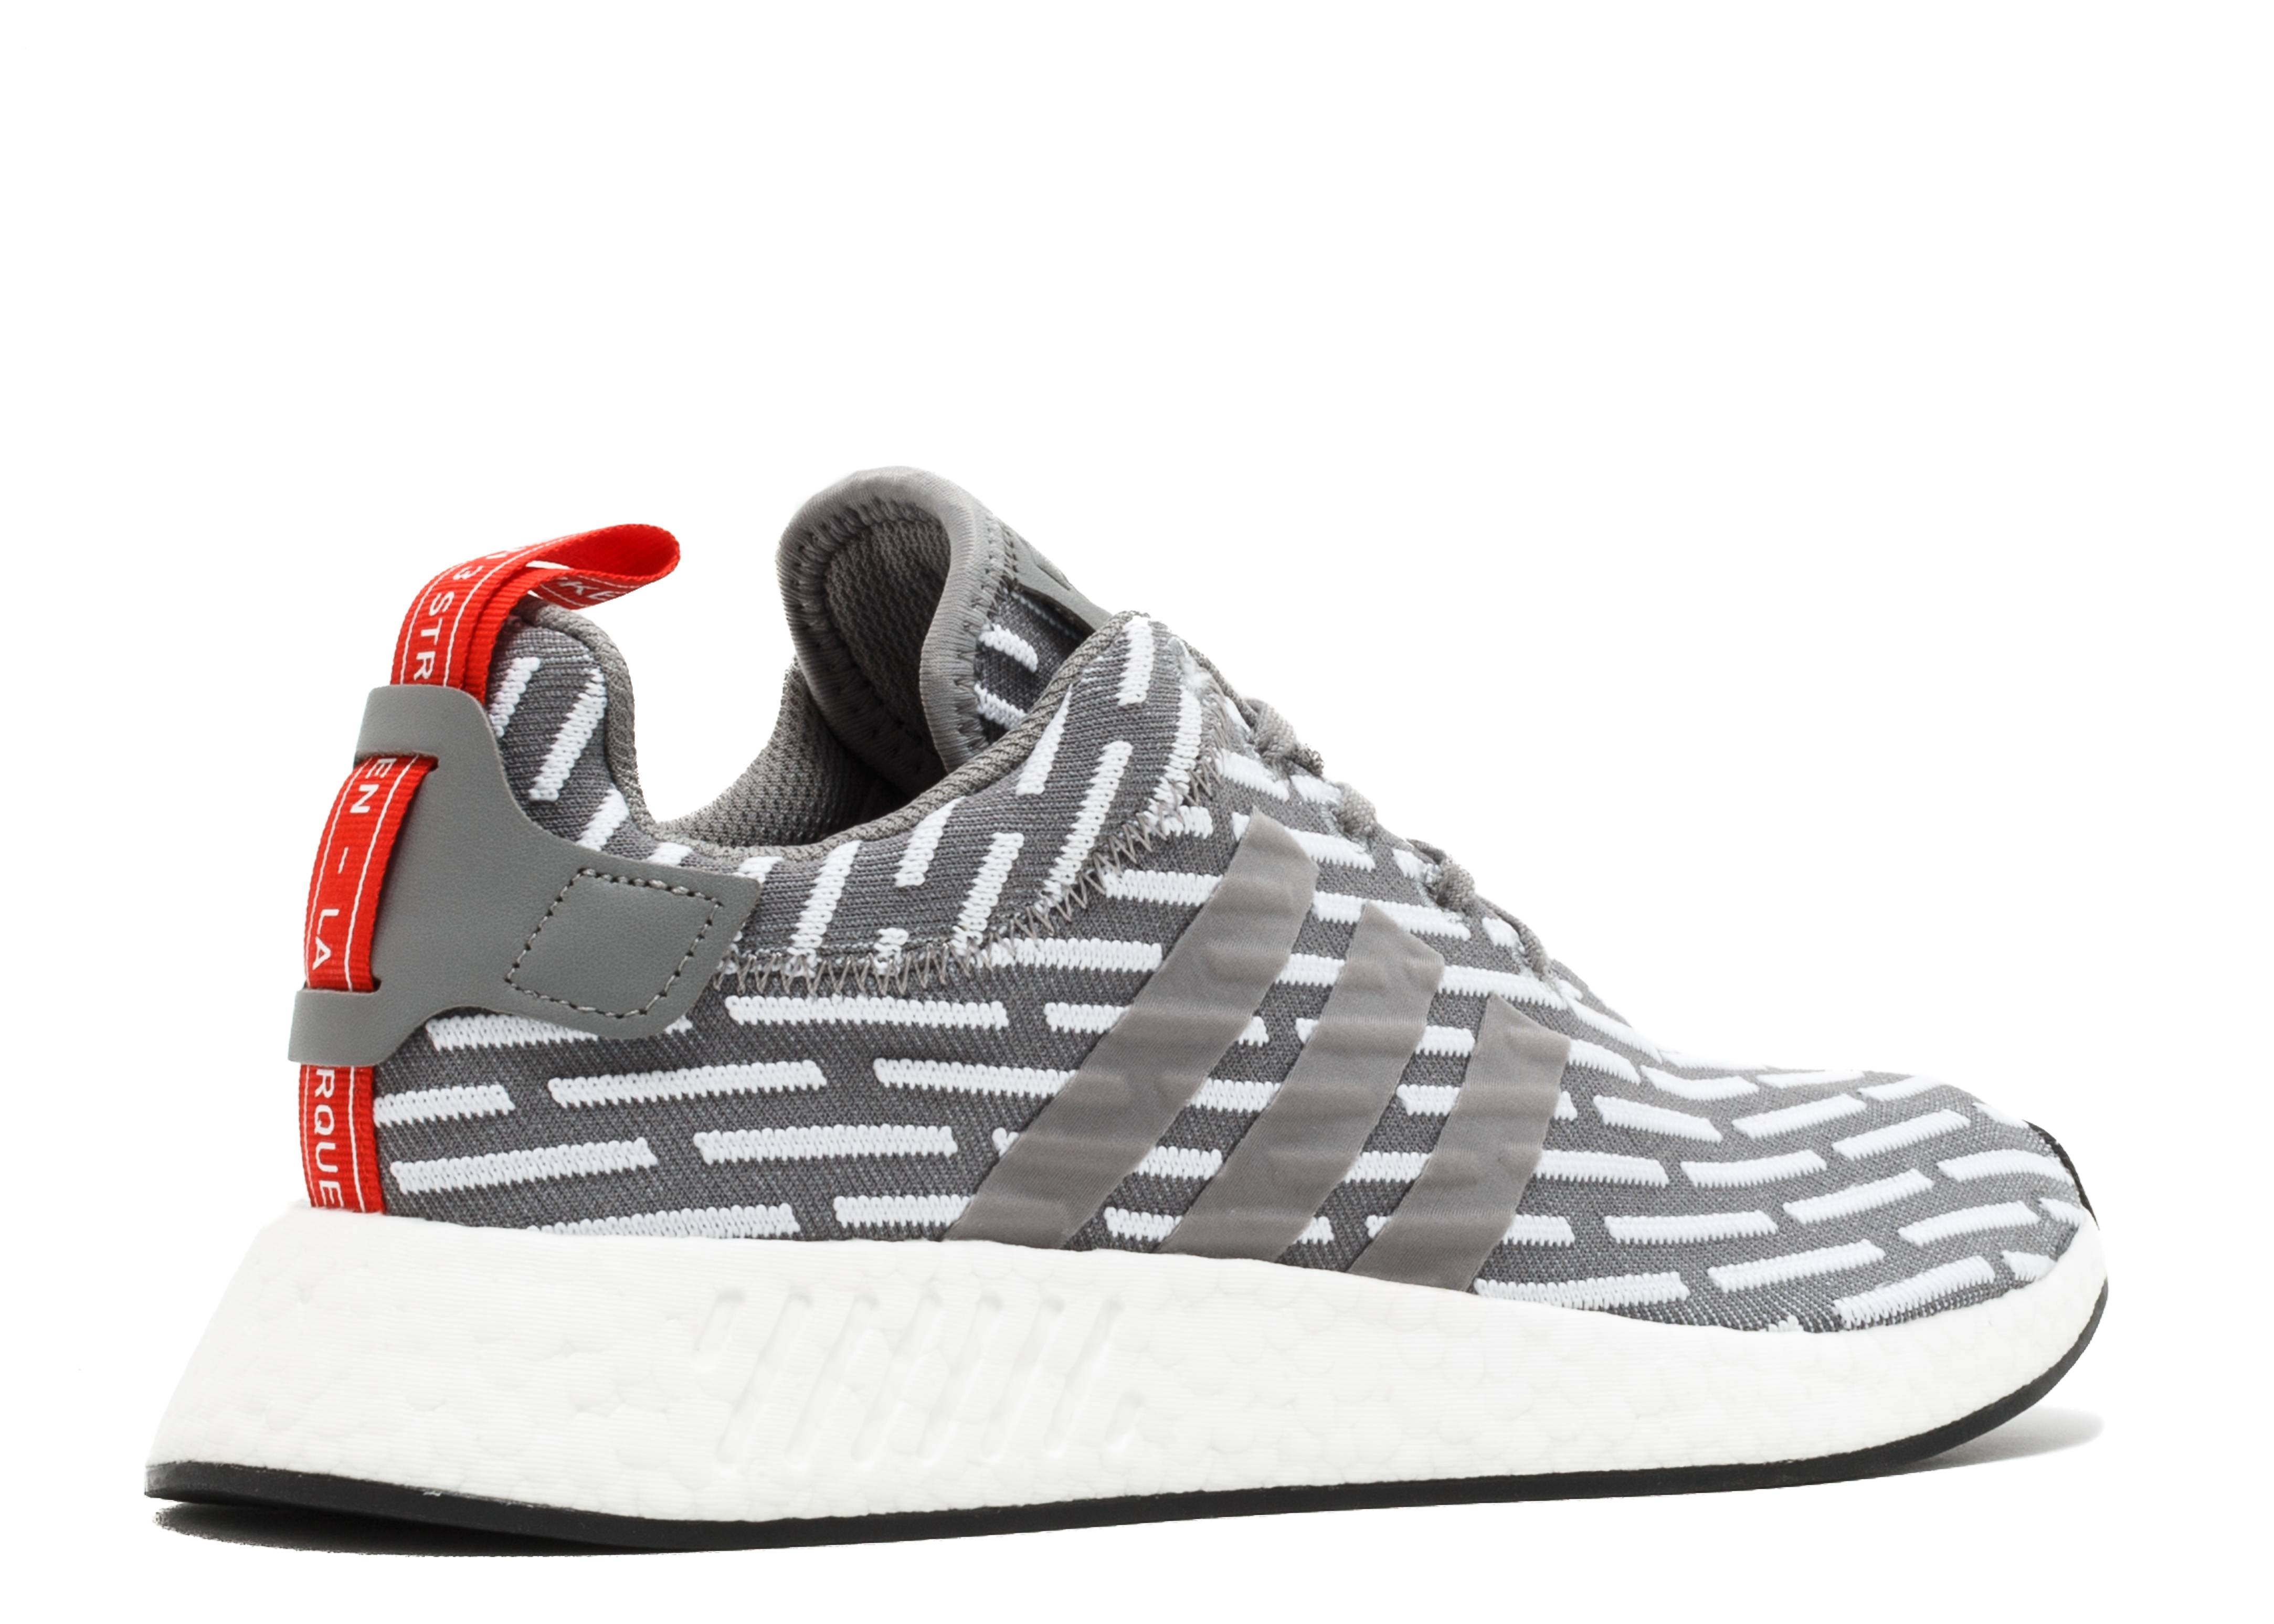 ef52658b25a0f Kick Avenue - Authentic Sneakers